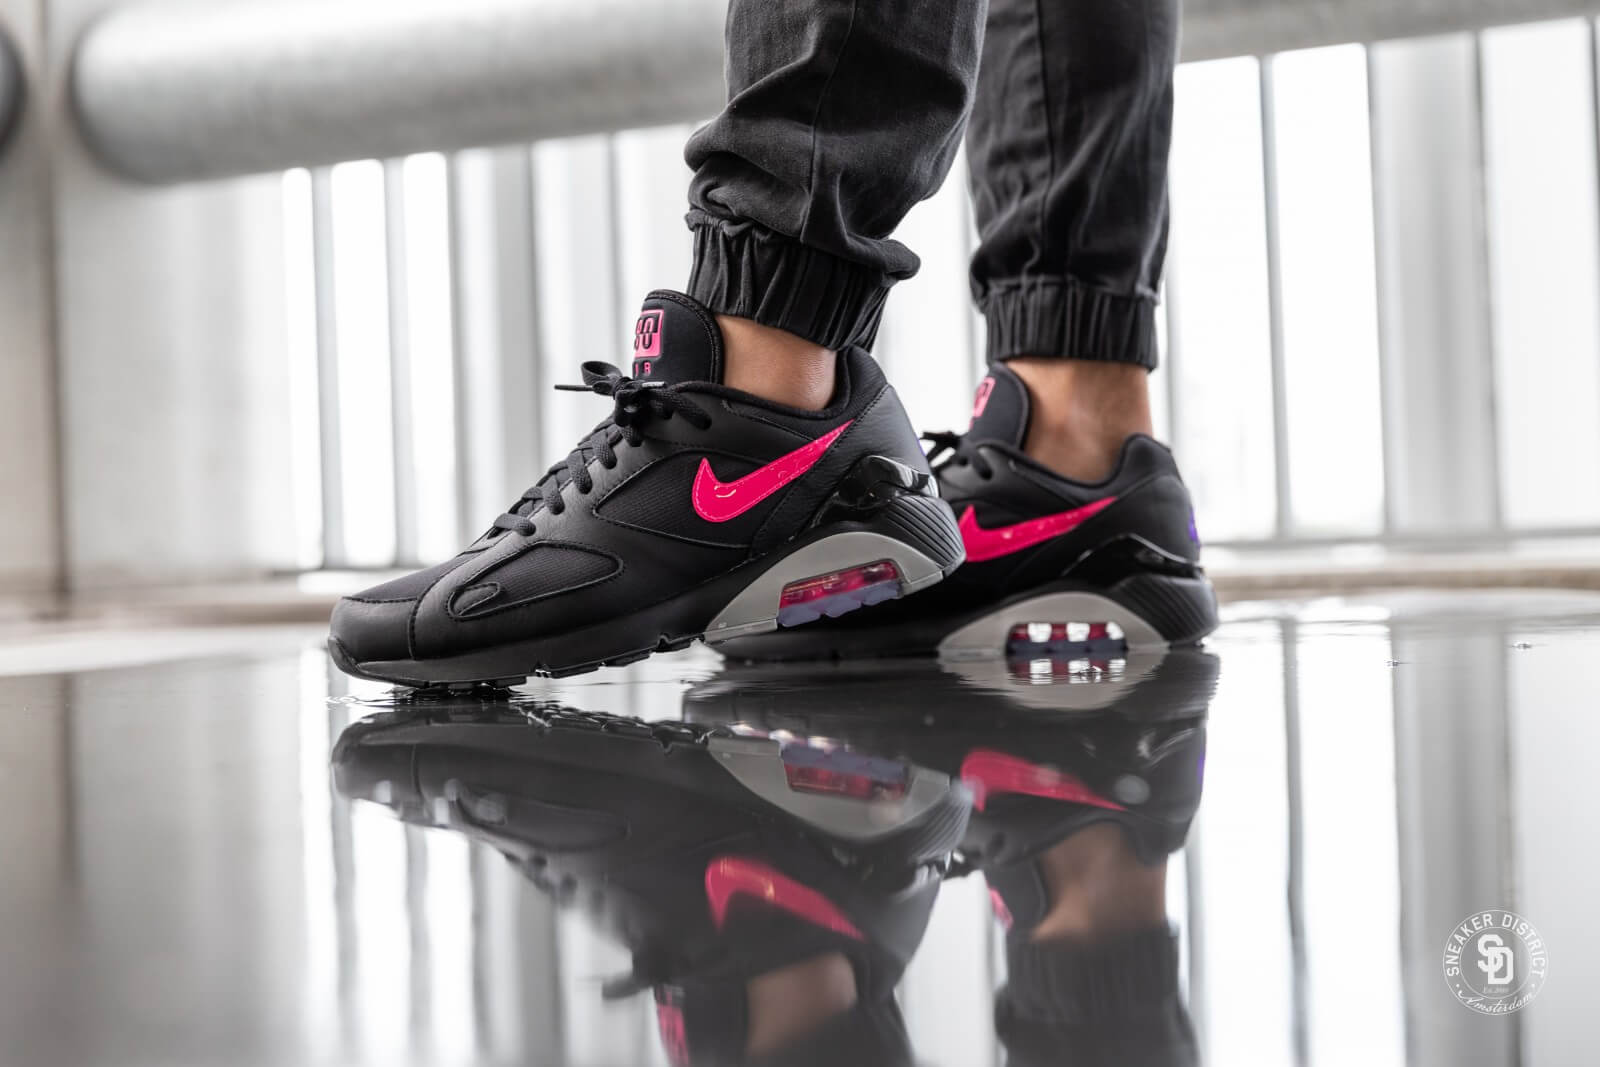 Details about Nike Air Max 180 AQ9974 001 BlackPink Blast Wolf Grey Men's shoes